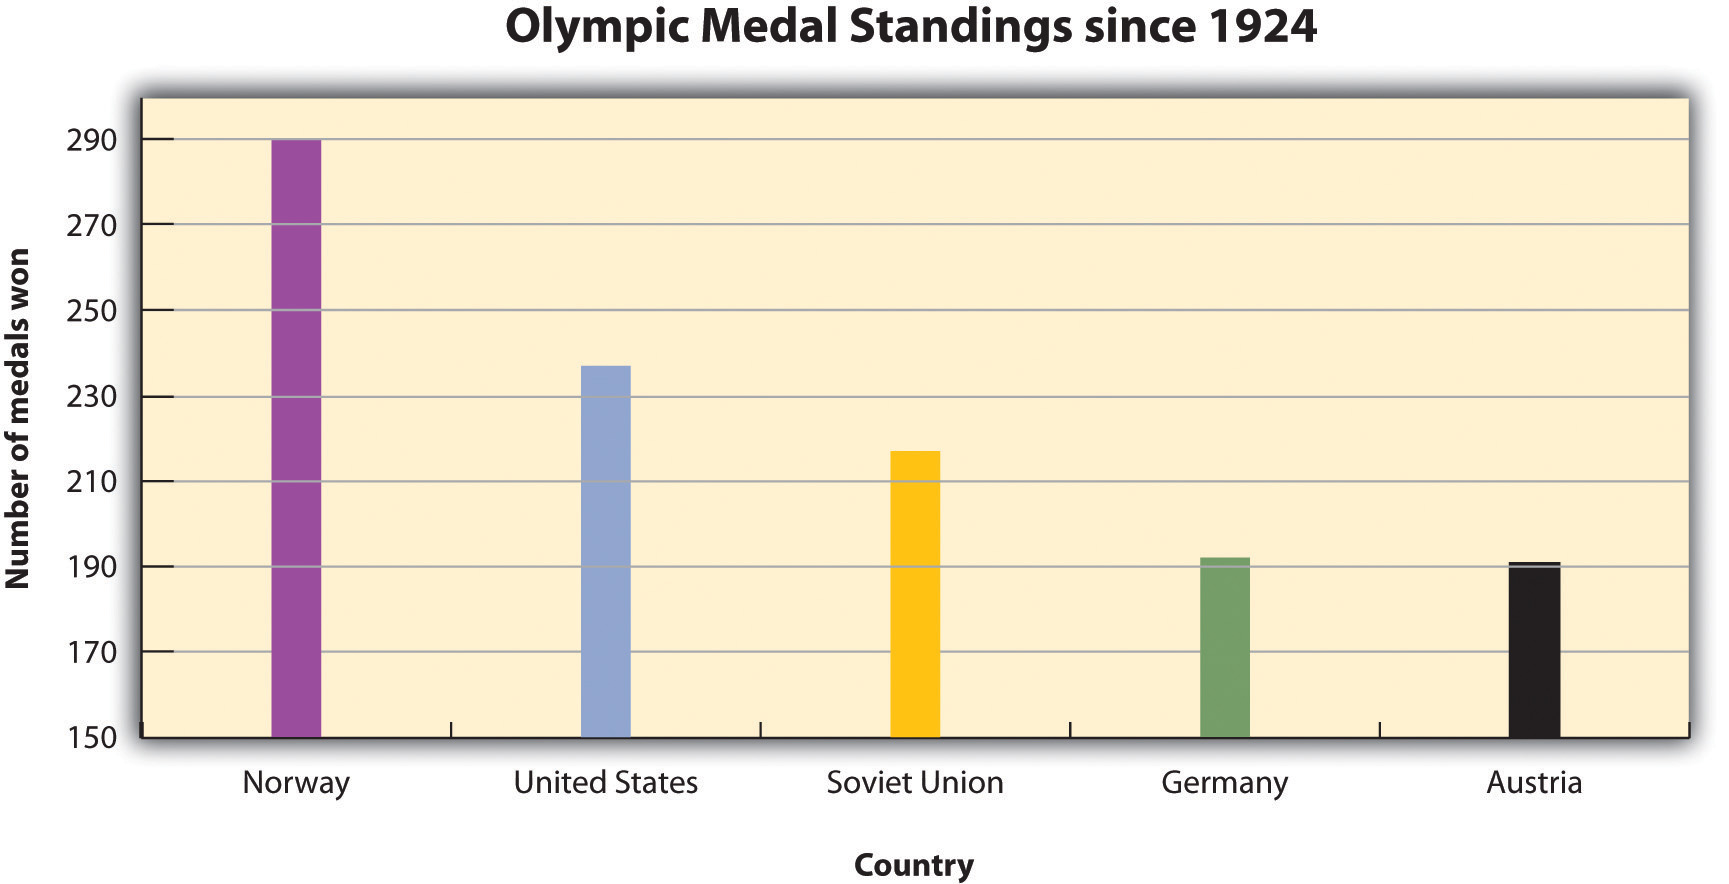 Olympic Medal Standings since 1924 show that Norway has won the most, followed by the United States, Soviet Union, Germany, and Austria